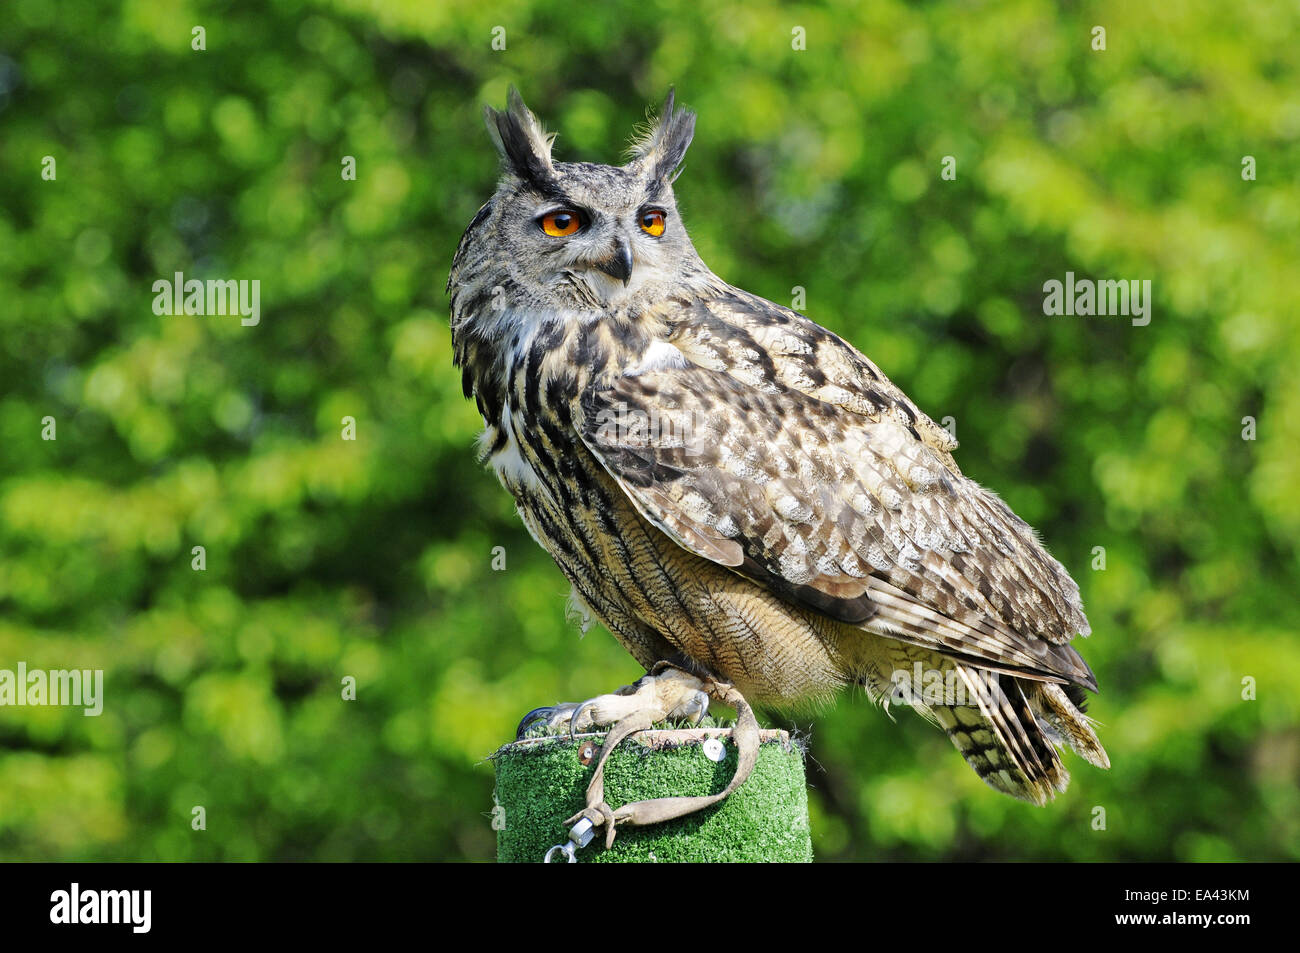 Eagle-owl, North Rhine-Westphalia, Germany - Stock Image